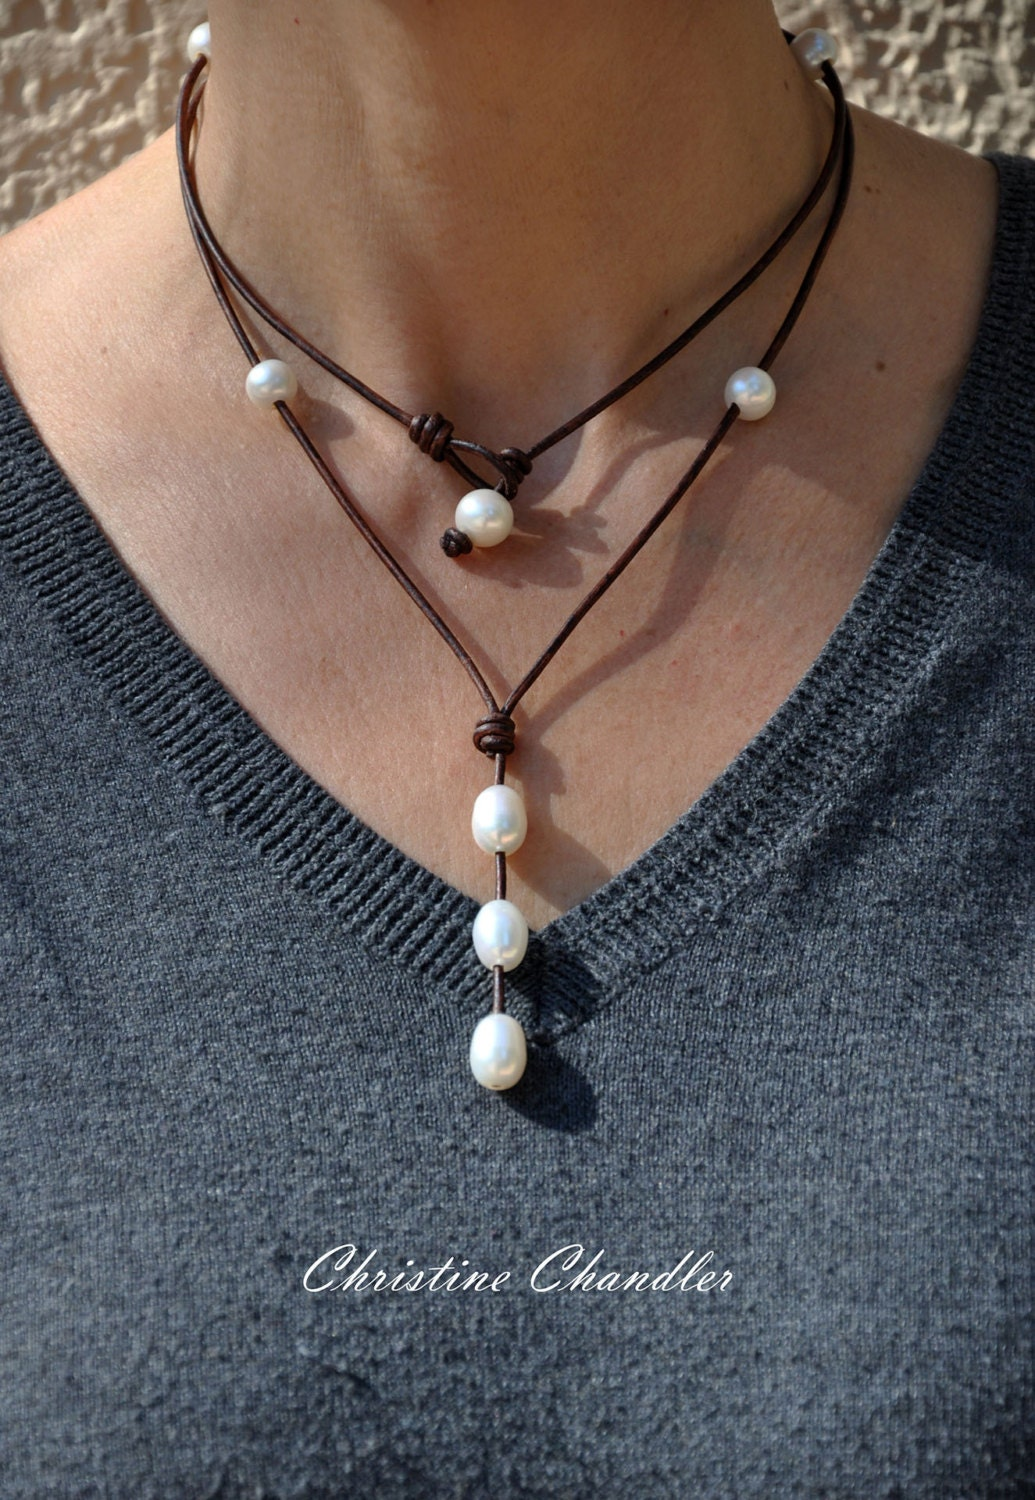 Leather and Pearl Necklace Long or Short Leather Necklace